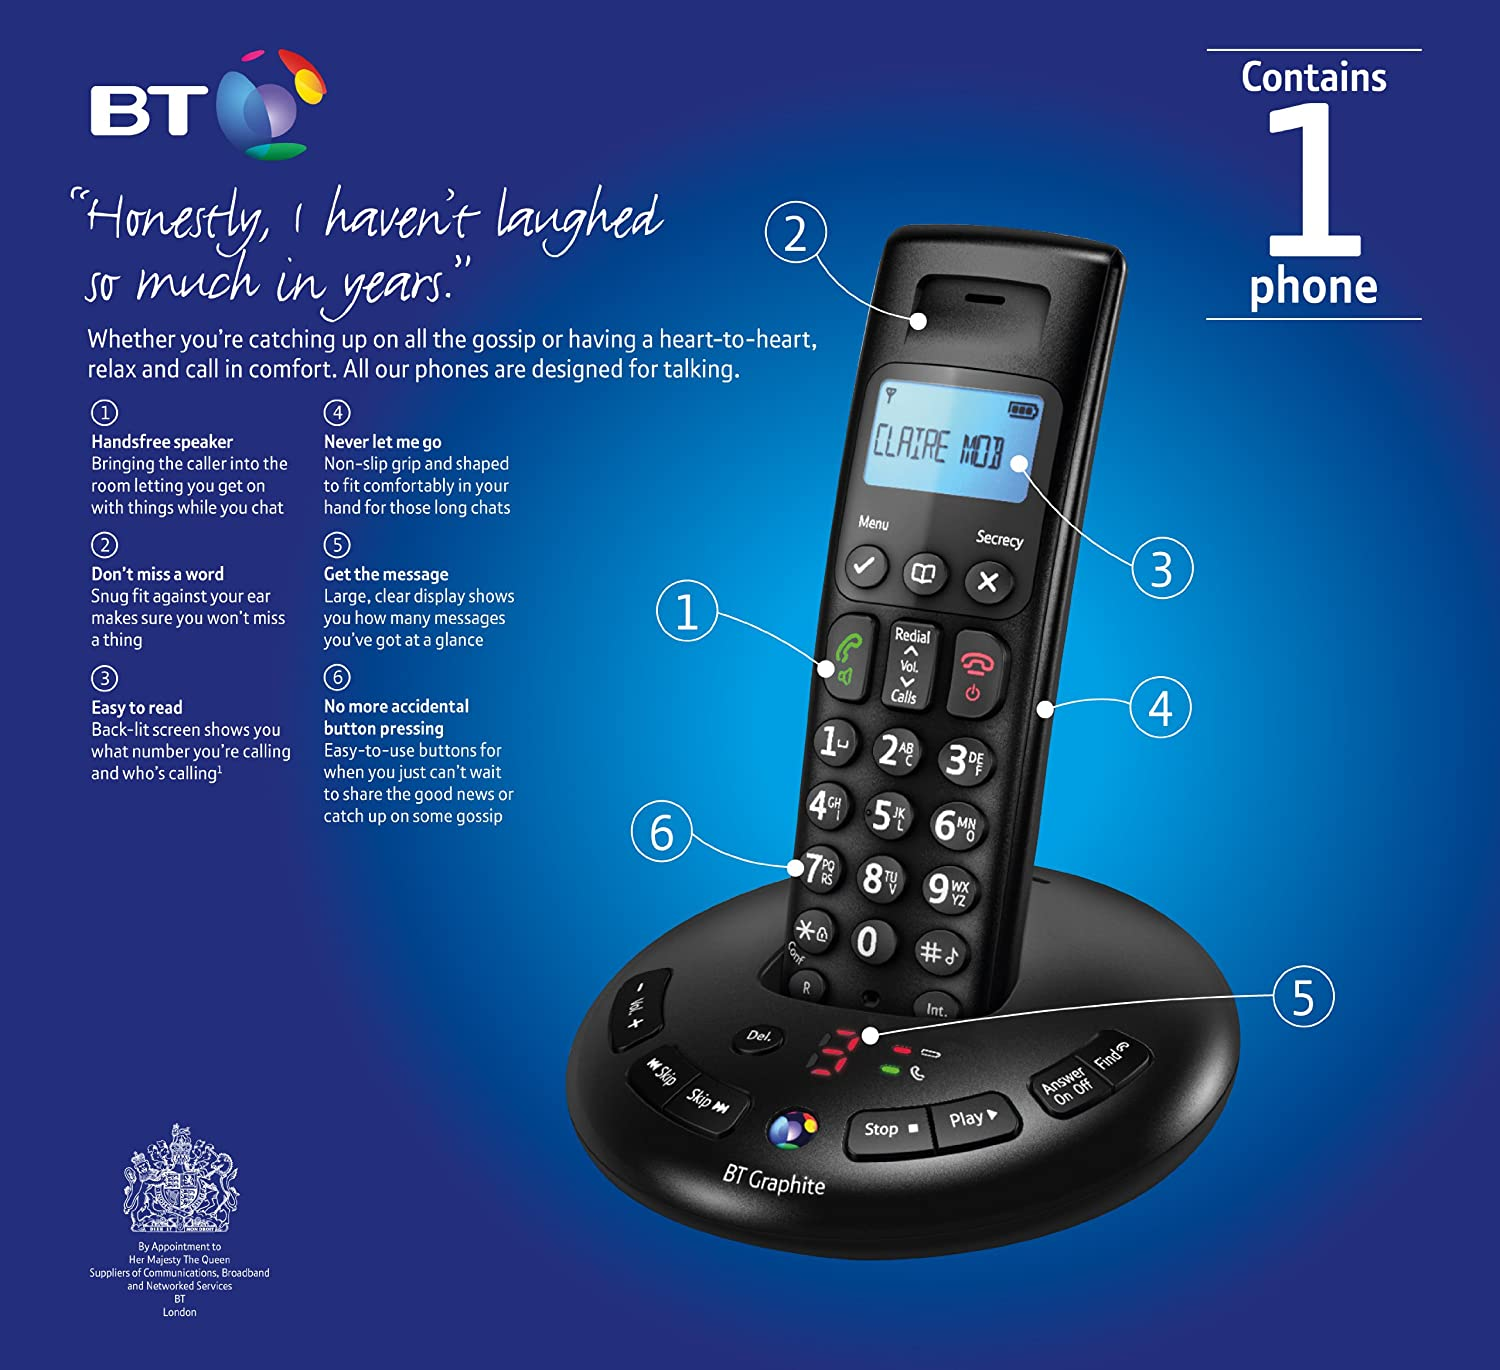 BT Graphite 2500 Single DECT Digital Cordless Phone: Amazon.co.uk:  Electronics